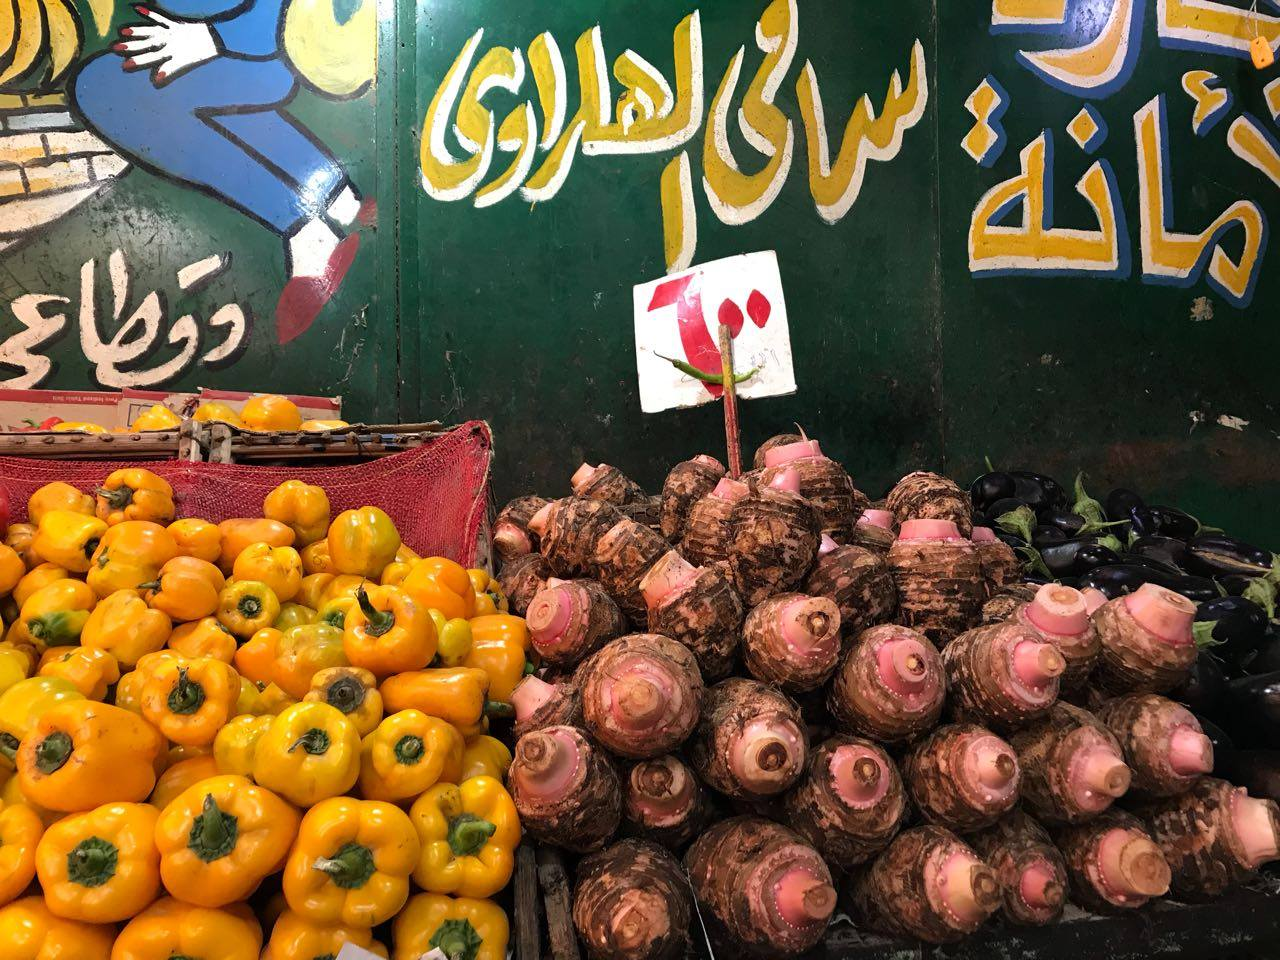 vegetables for sale at a local market in cairo